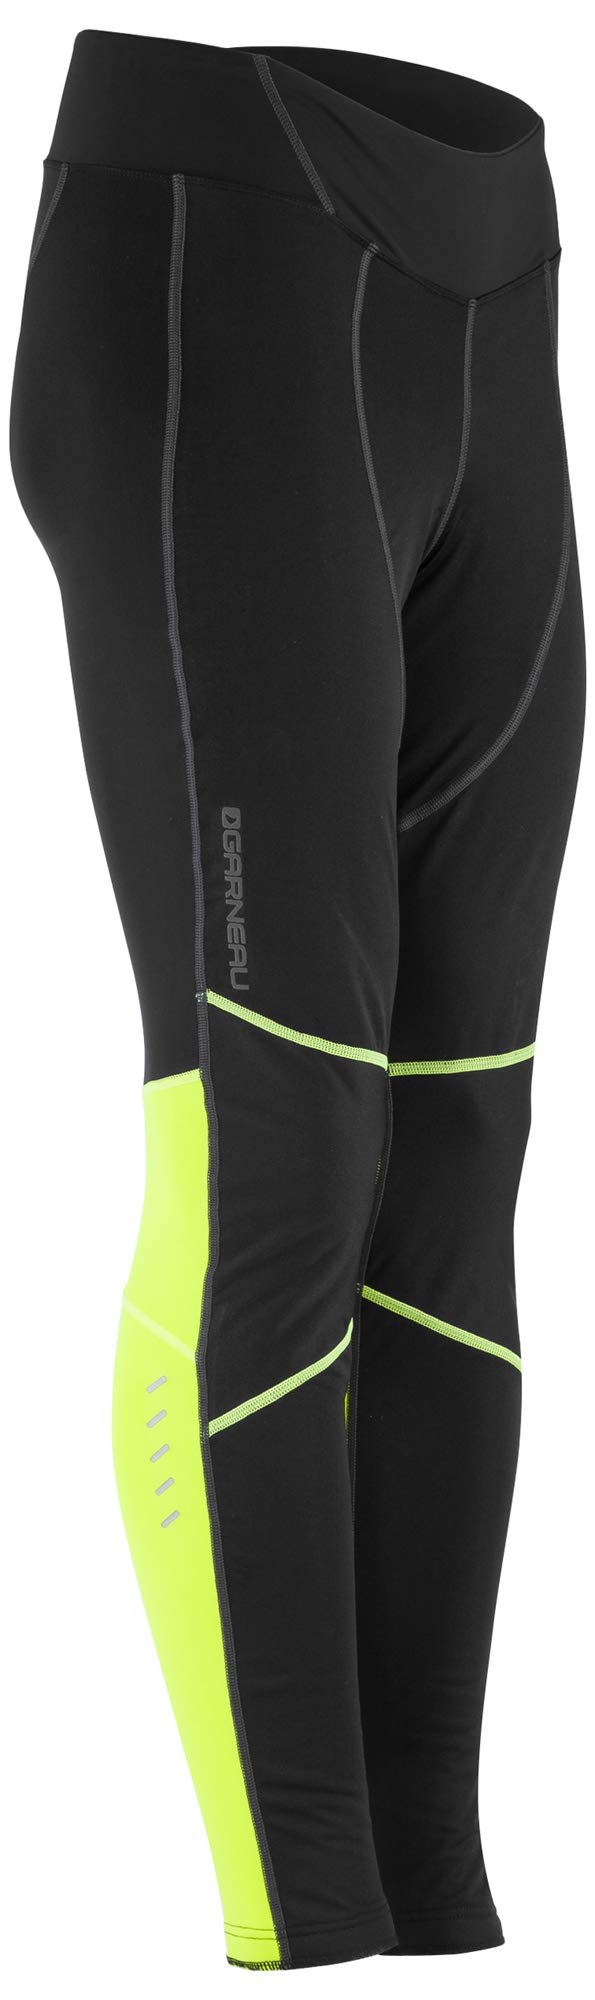 Louis Garneau Women's Solano 2 Breathable, Thermal Cycling Tights with Padded Chamois, Black/Yellow, Small by Louis Garneau